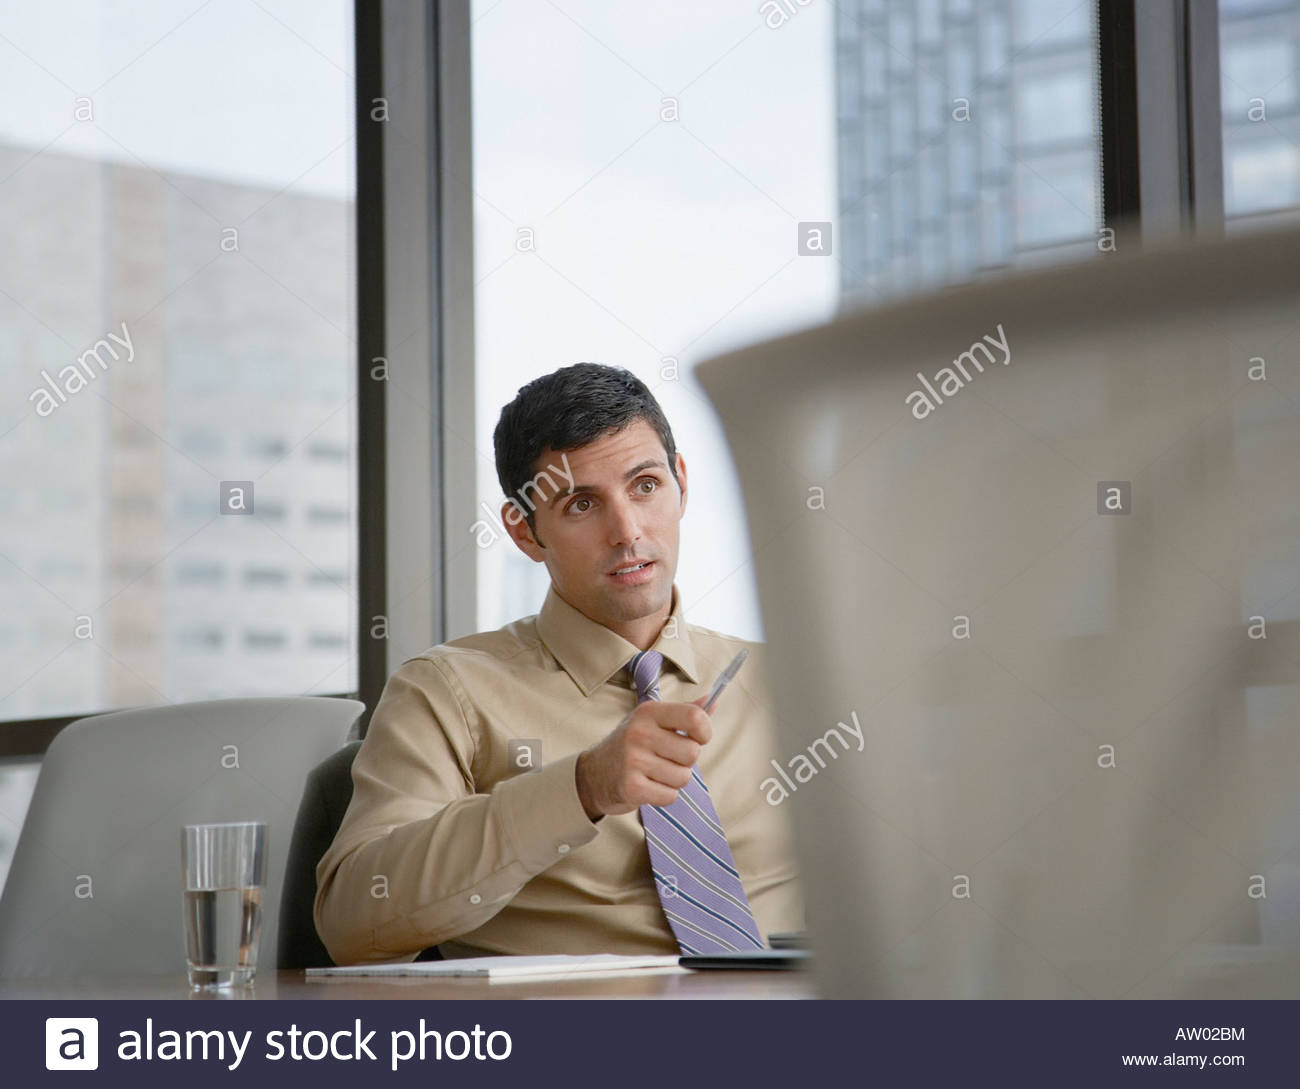 Businessman in boardroom pointing his pen at something - Stock Image